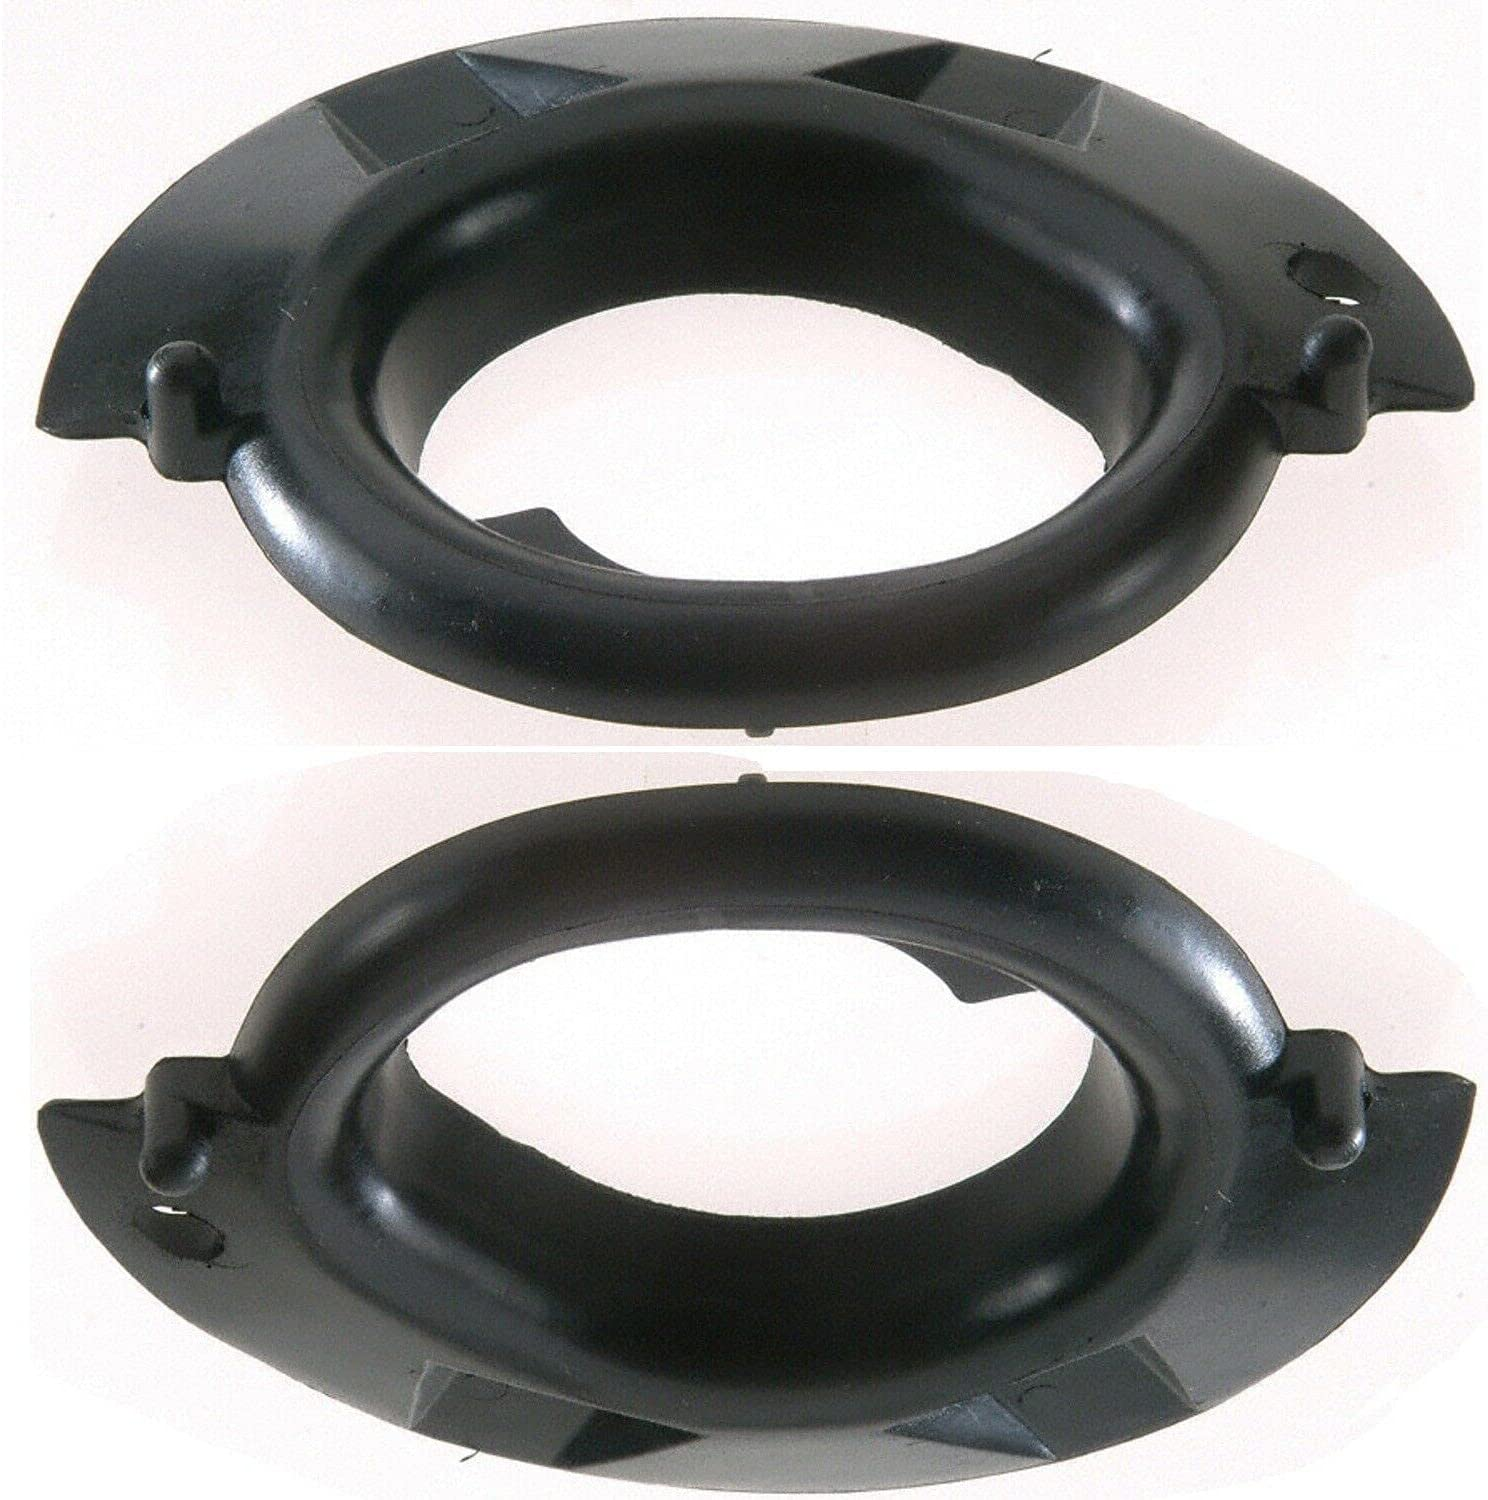 Special sale item Replacement Front Lower Suspension Topics on TV Seat Coil Spring Set